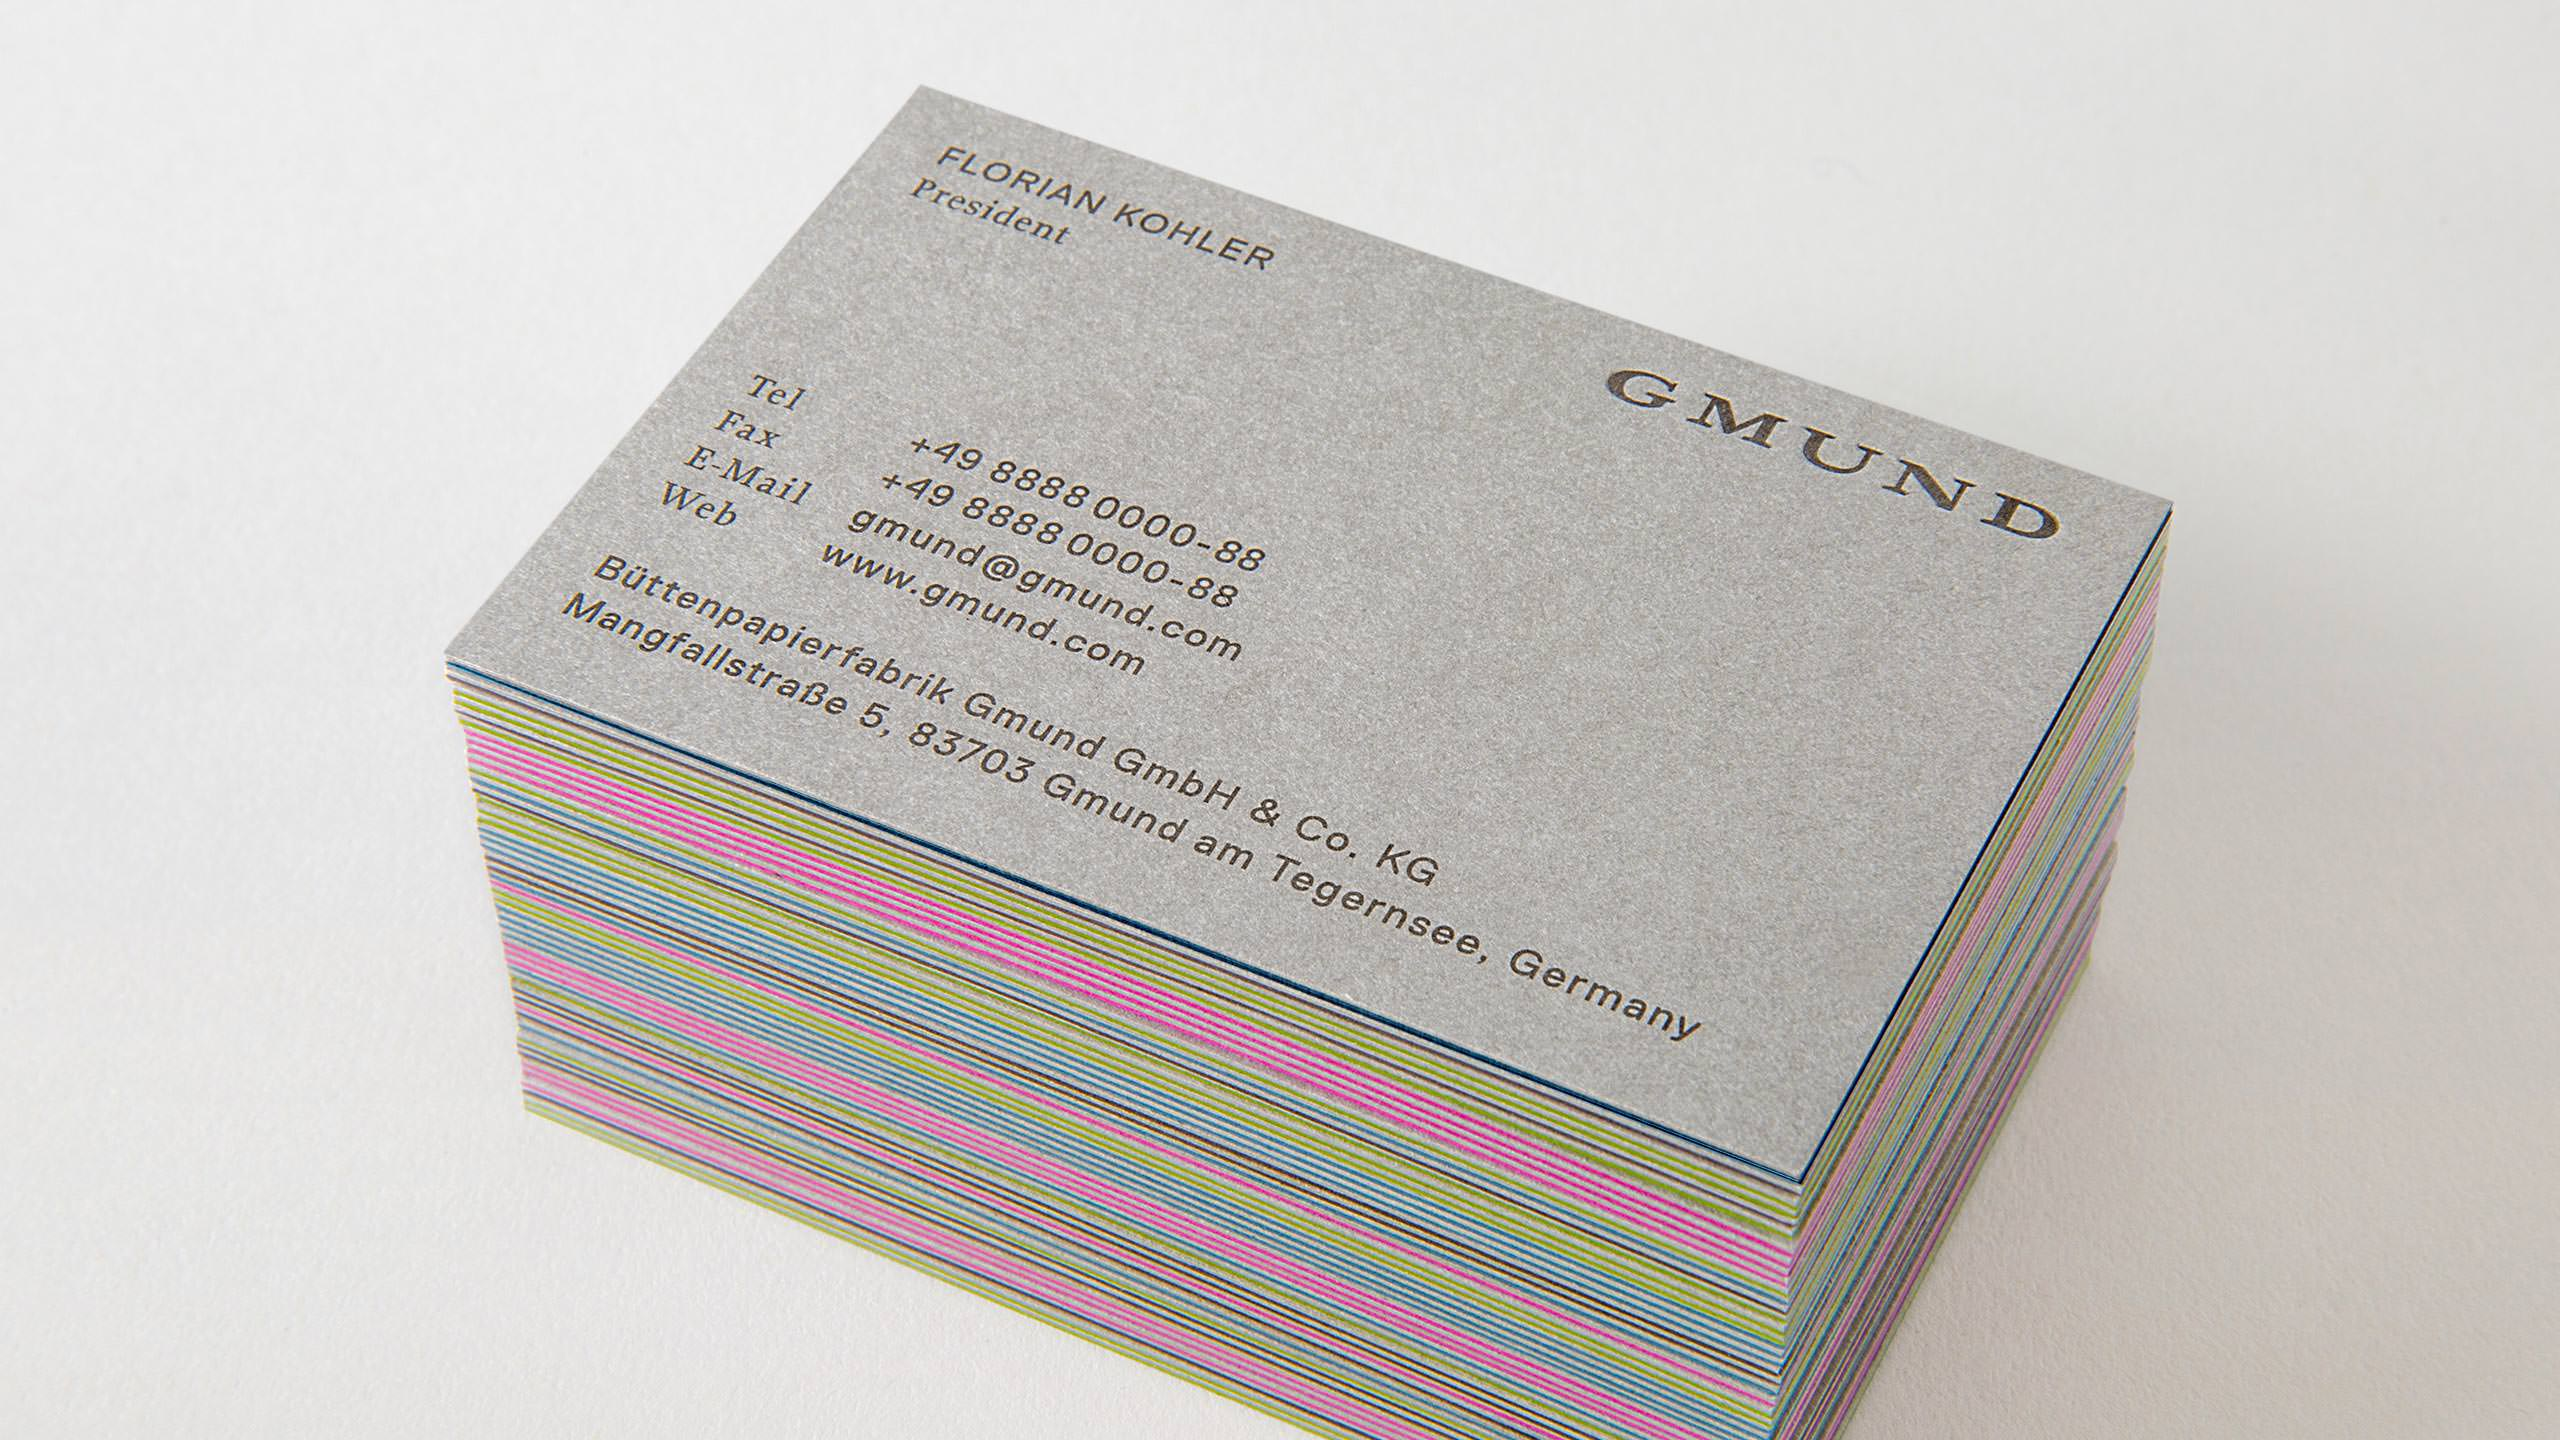 Gmund Brand Refresh Business Cards Stacked - Florian Kohler